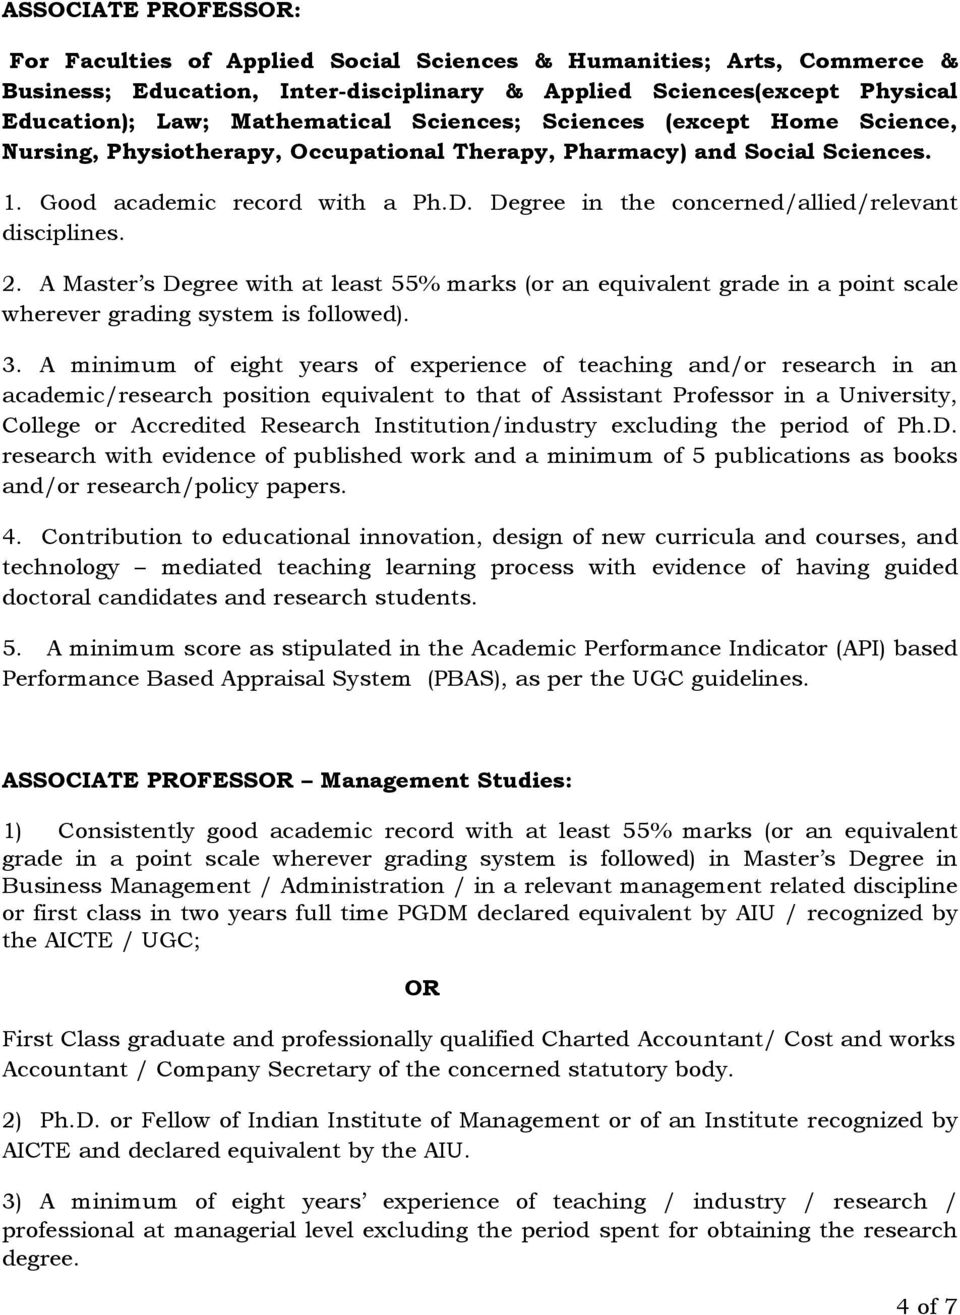 Degree in the concerned/allied/relevant disciplines. 2. A Master s Degree with at least 55% marks (or an equivalent grade in a point scale wherever grading system is followed). 3.